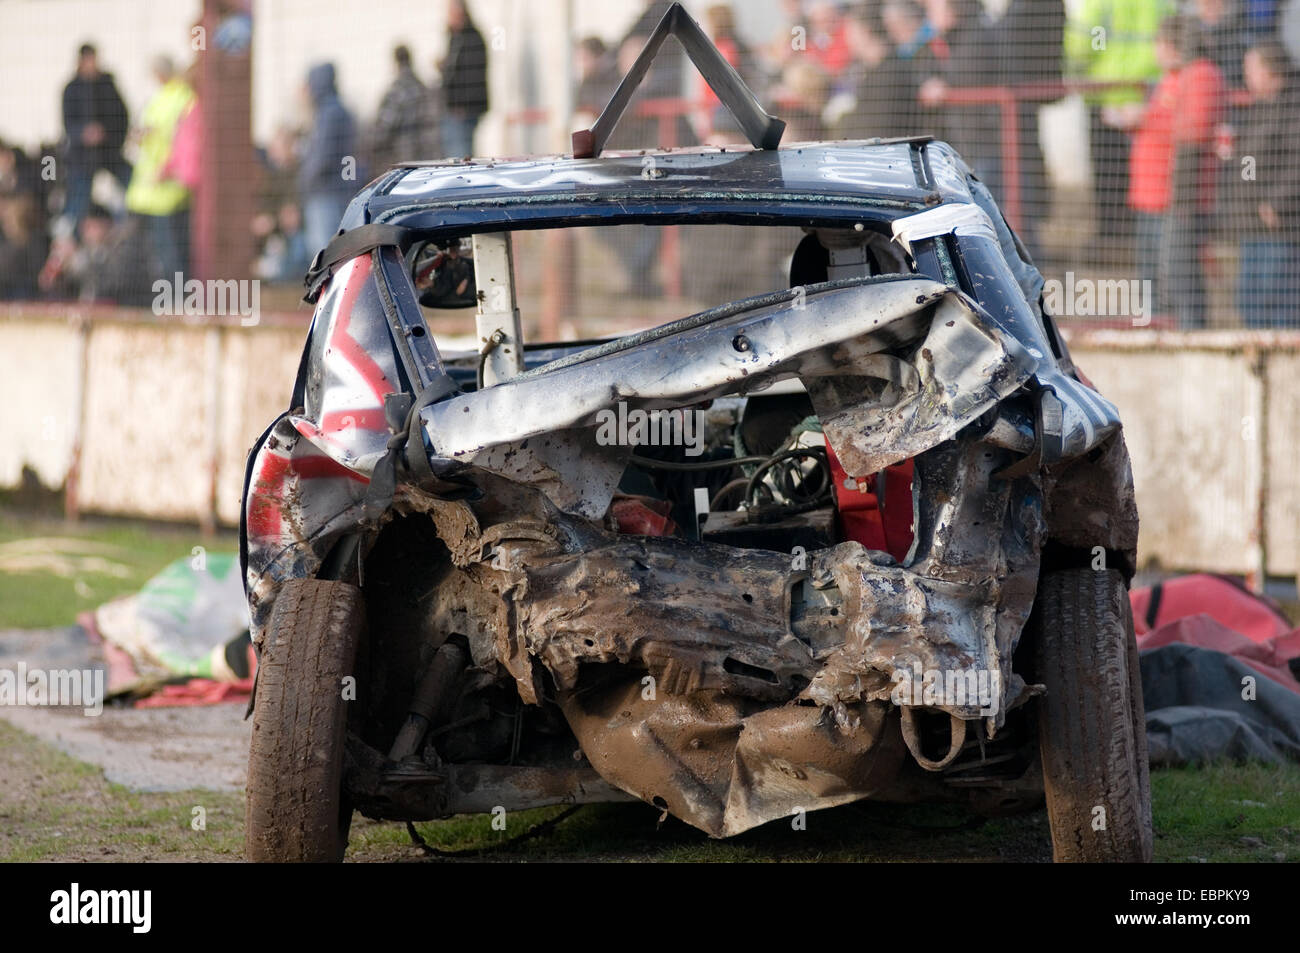 smashed up old junk car cars demolition derbies derby destruction demo dent dented bent crash crashed bent twisted - Stock Image